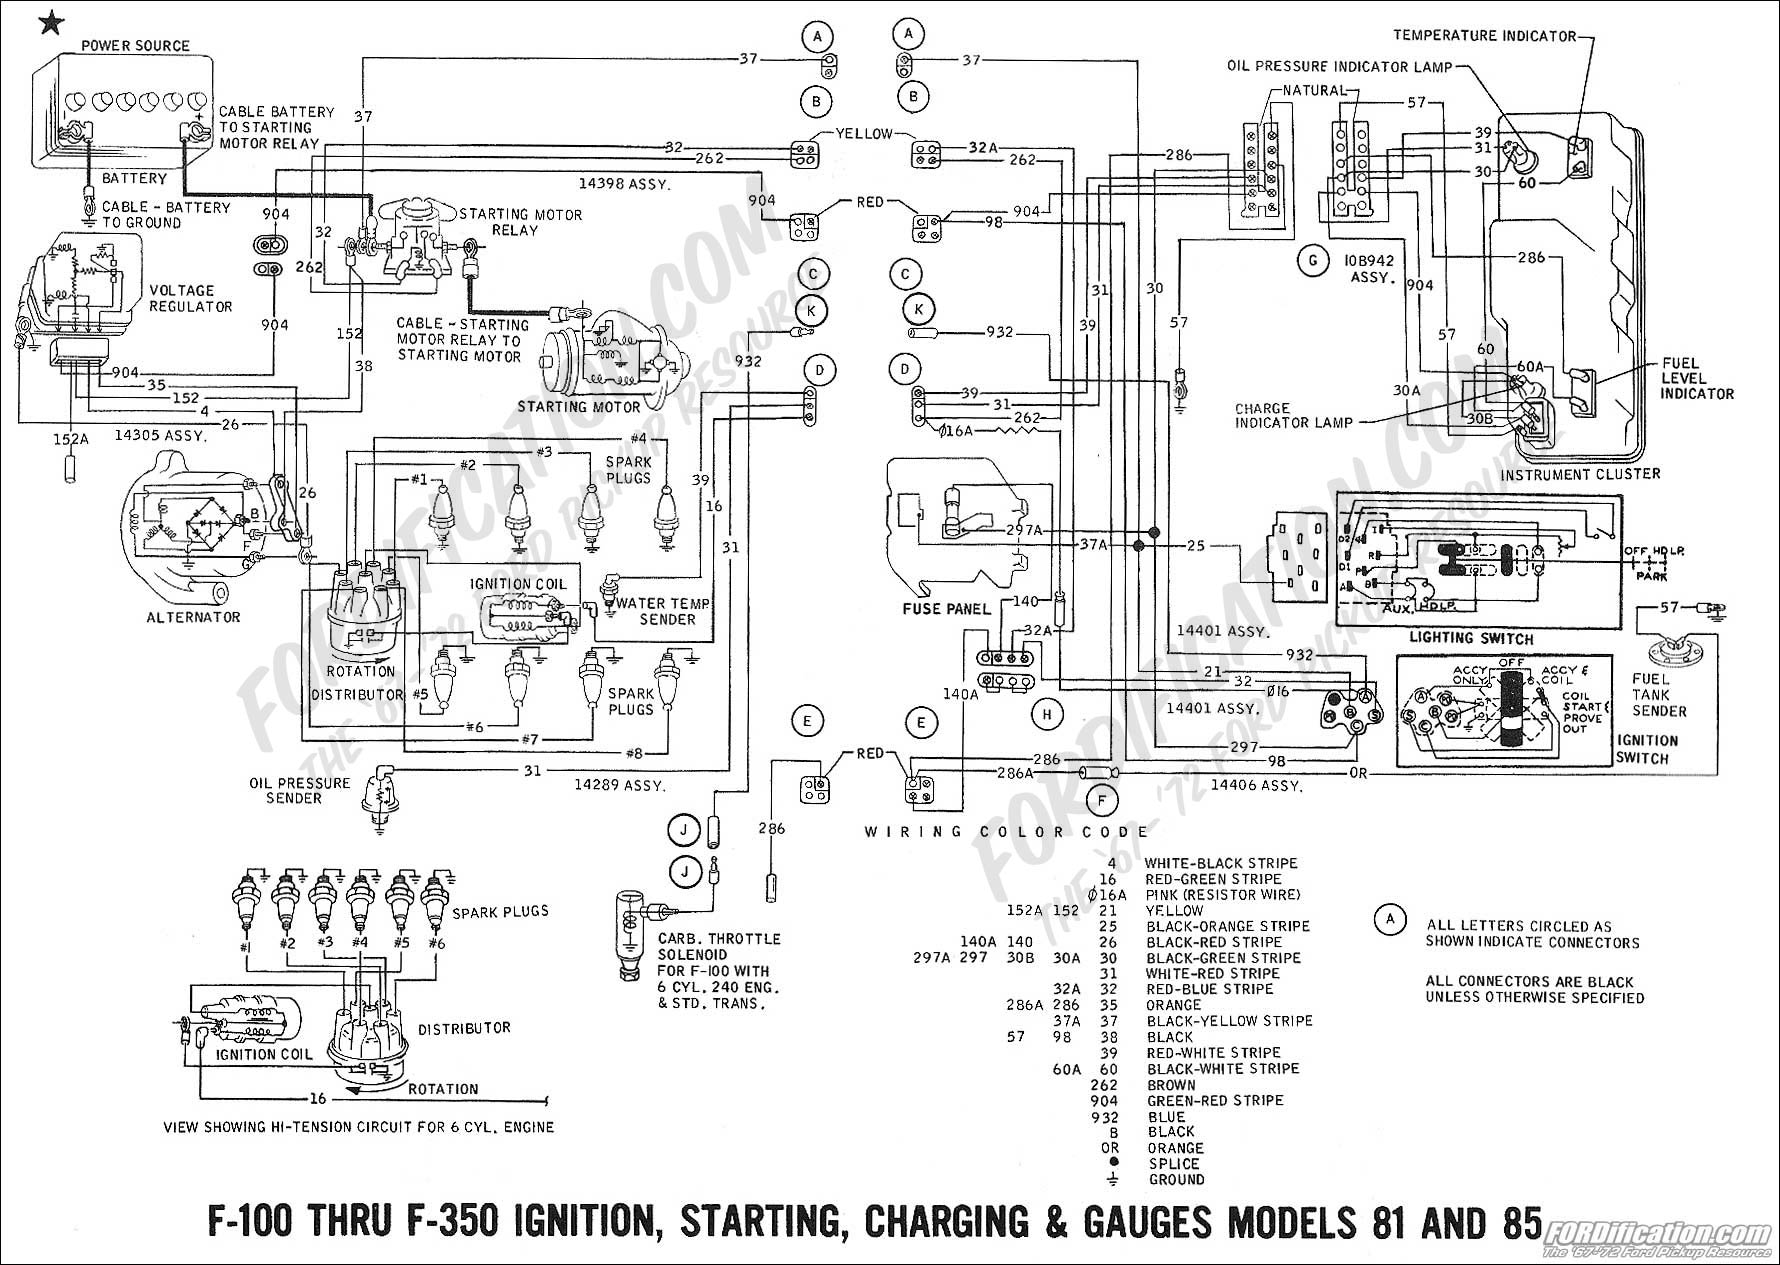 1987 ford ltd fuse box diagram wiring diagram1987 f250 fuse box wiring diagram1987 ford f 250 wiring diagram 1 wohnungzumieten de \\\\